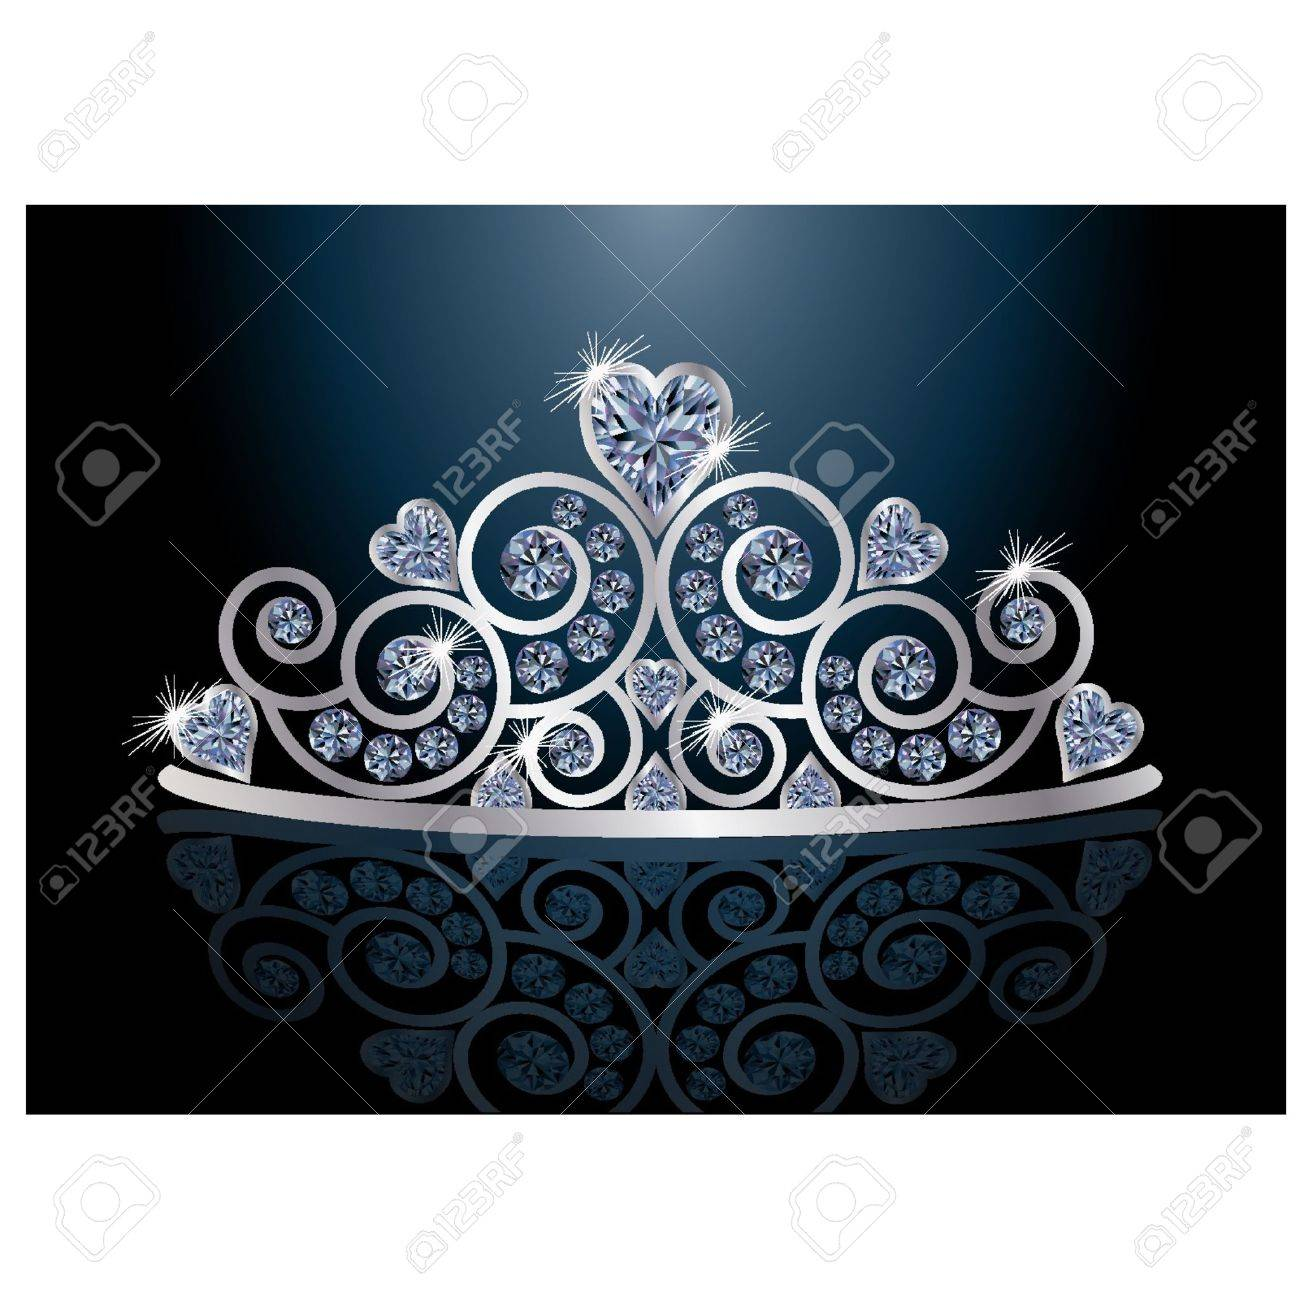 Tiara or diadem with reflection Stock Vector - 13330427